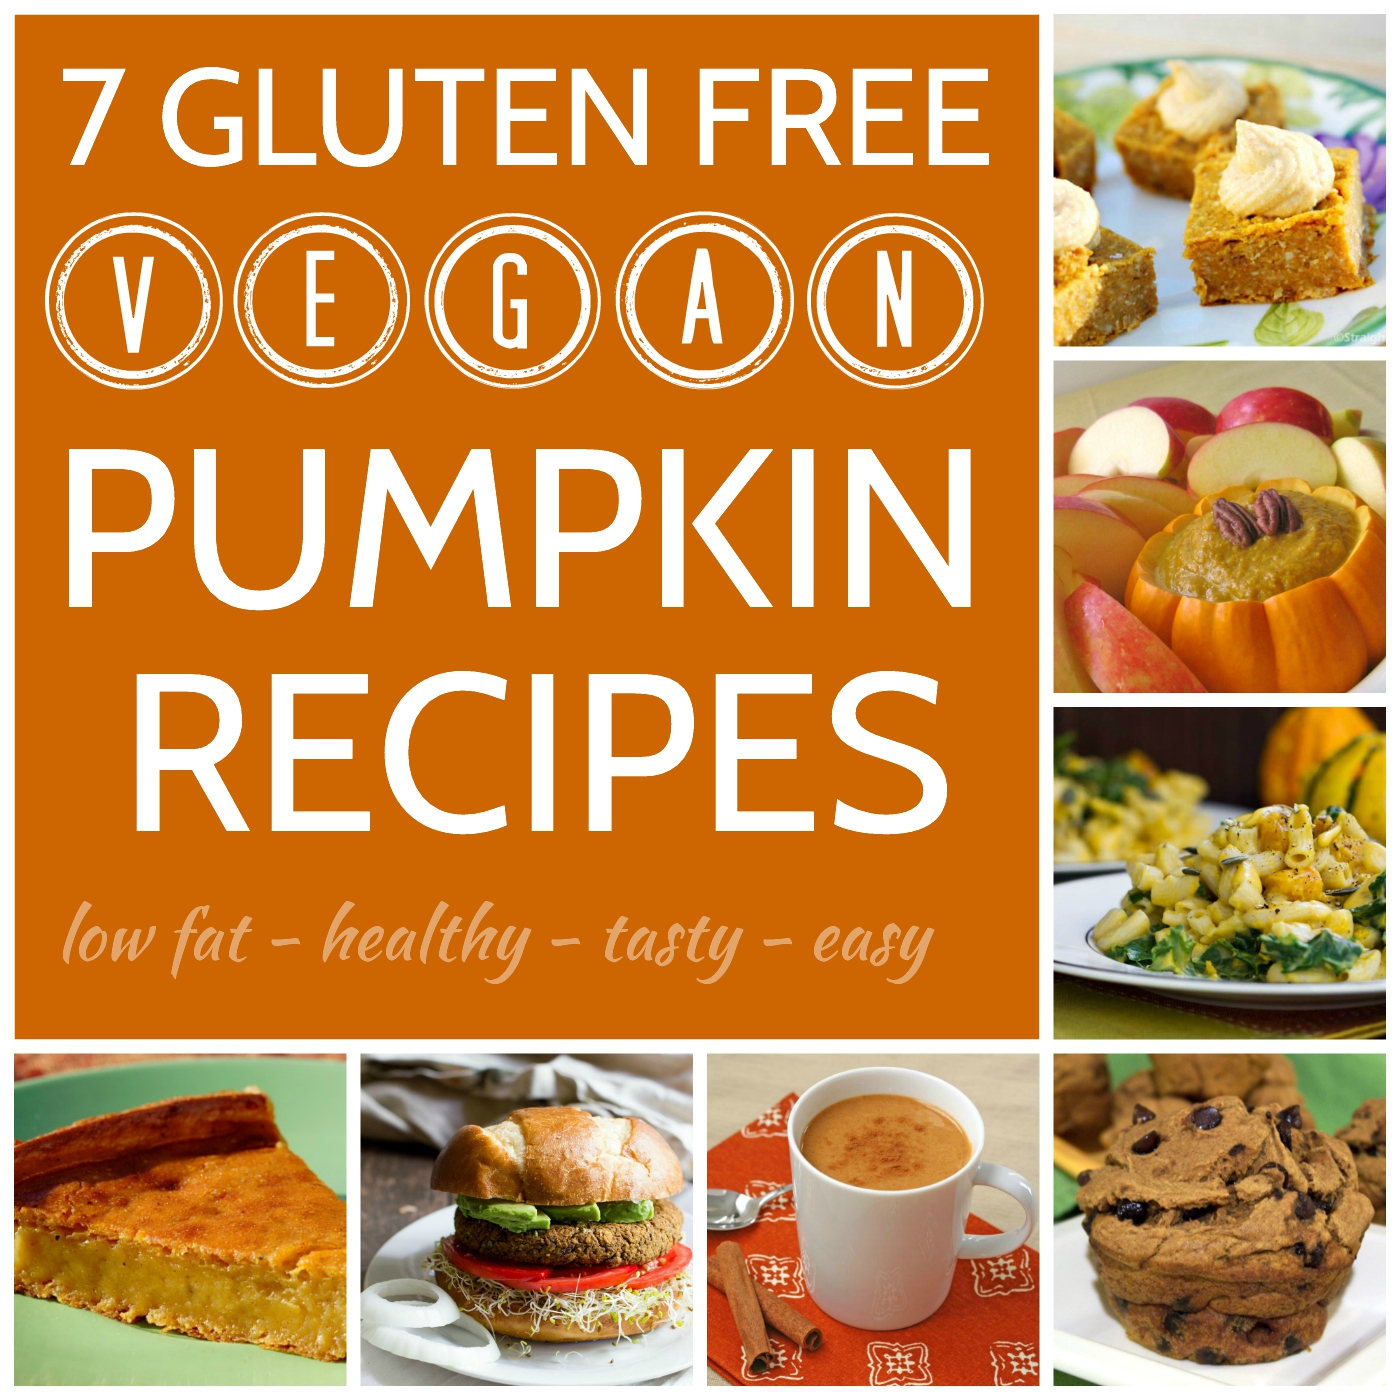 7 Gluten-free vegan pumpkin recipes (low fat and easy too!)